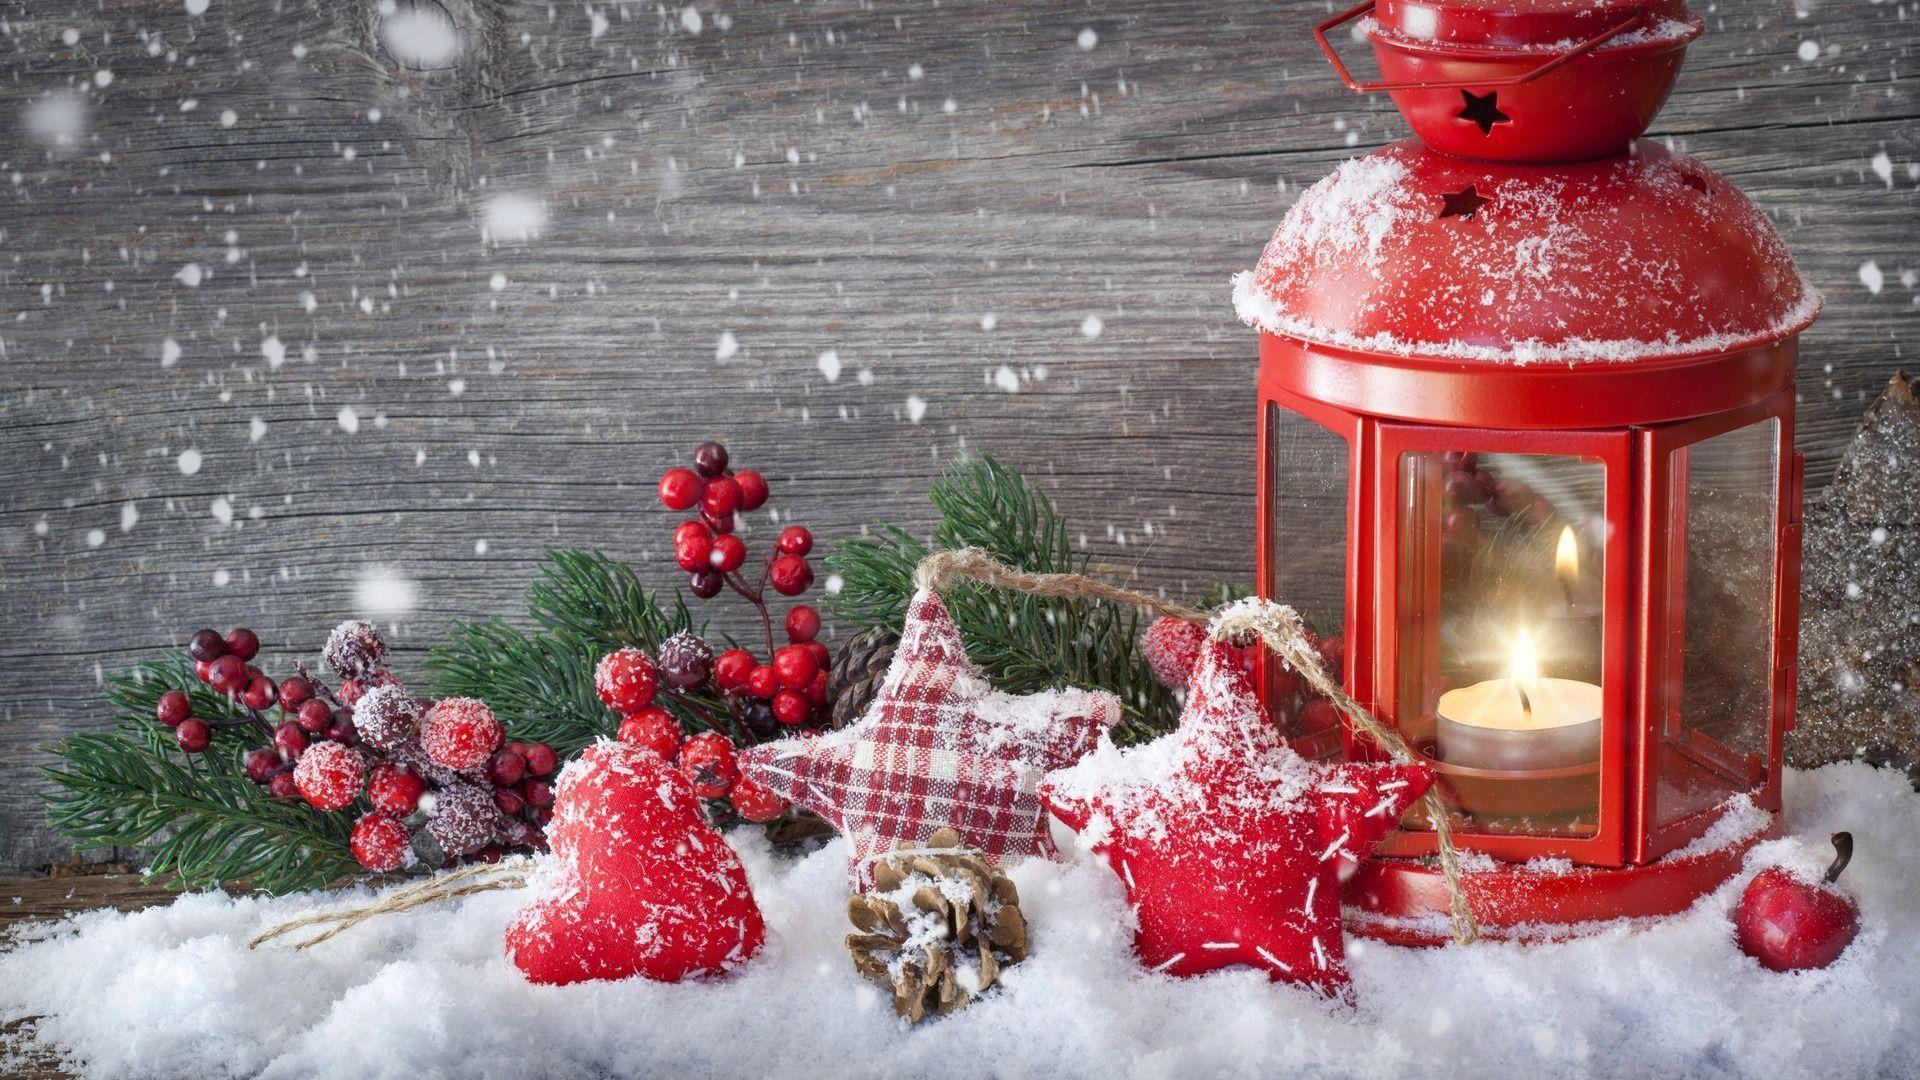 Christmas Wall Paper.Christmas Candle Wallpapers Wallpaper Cave